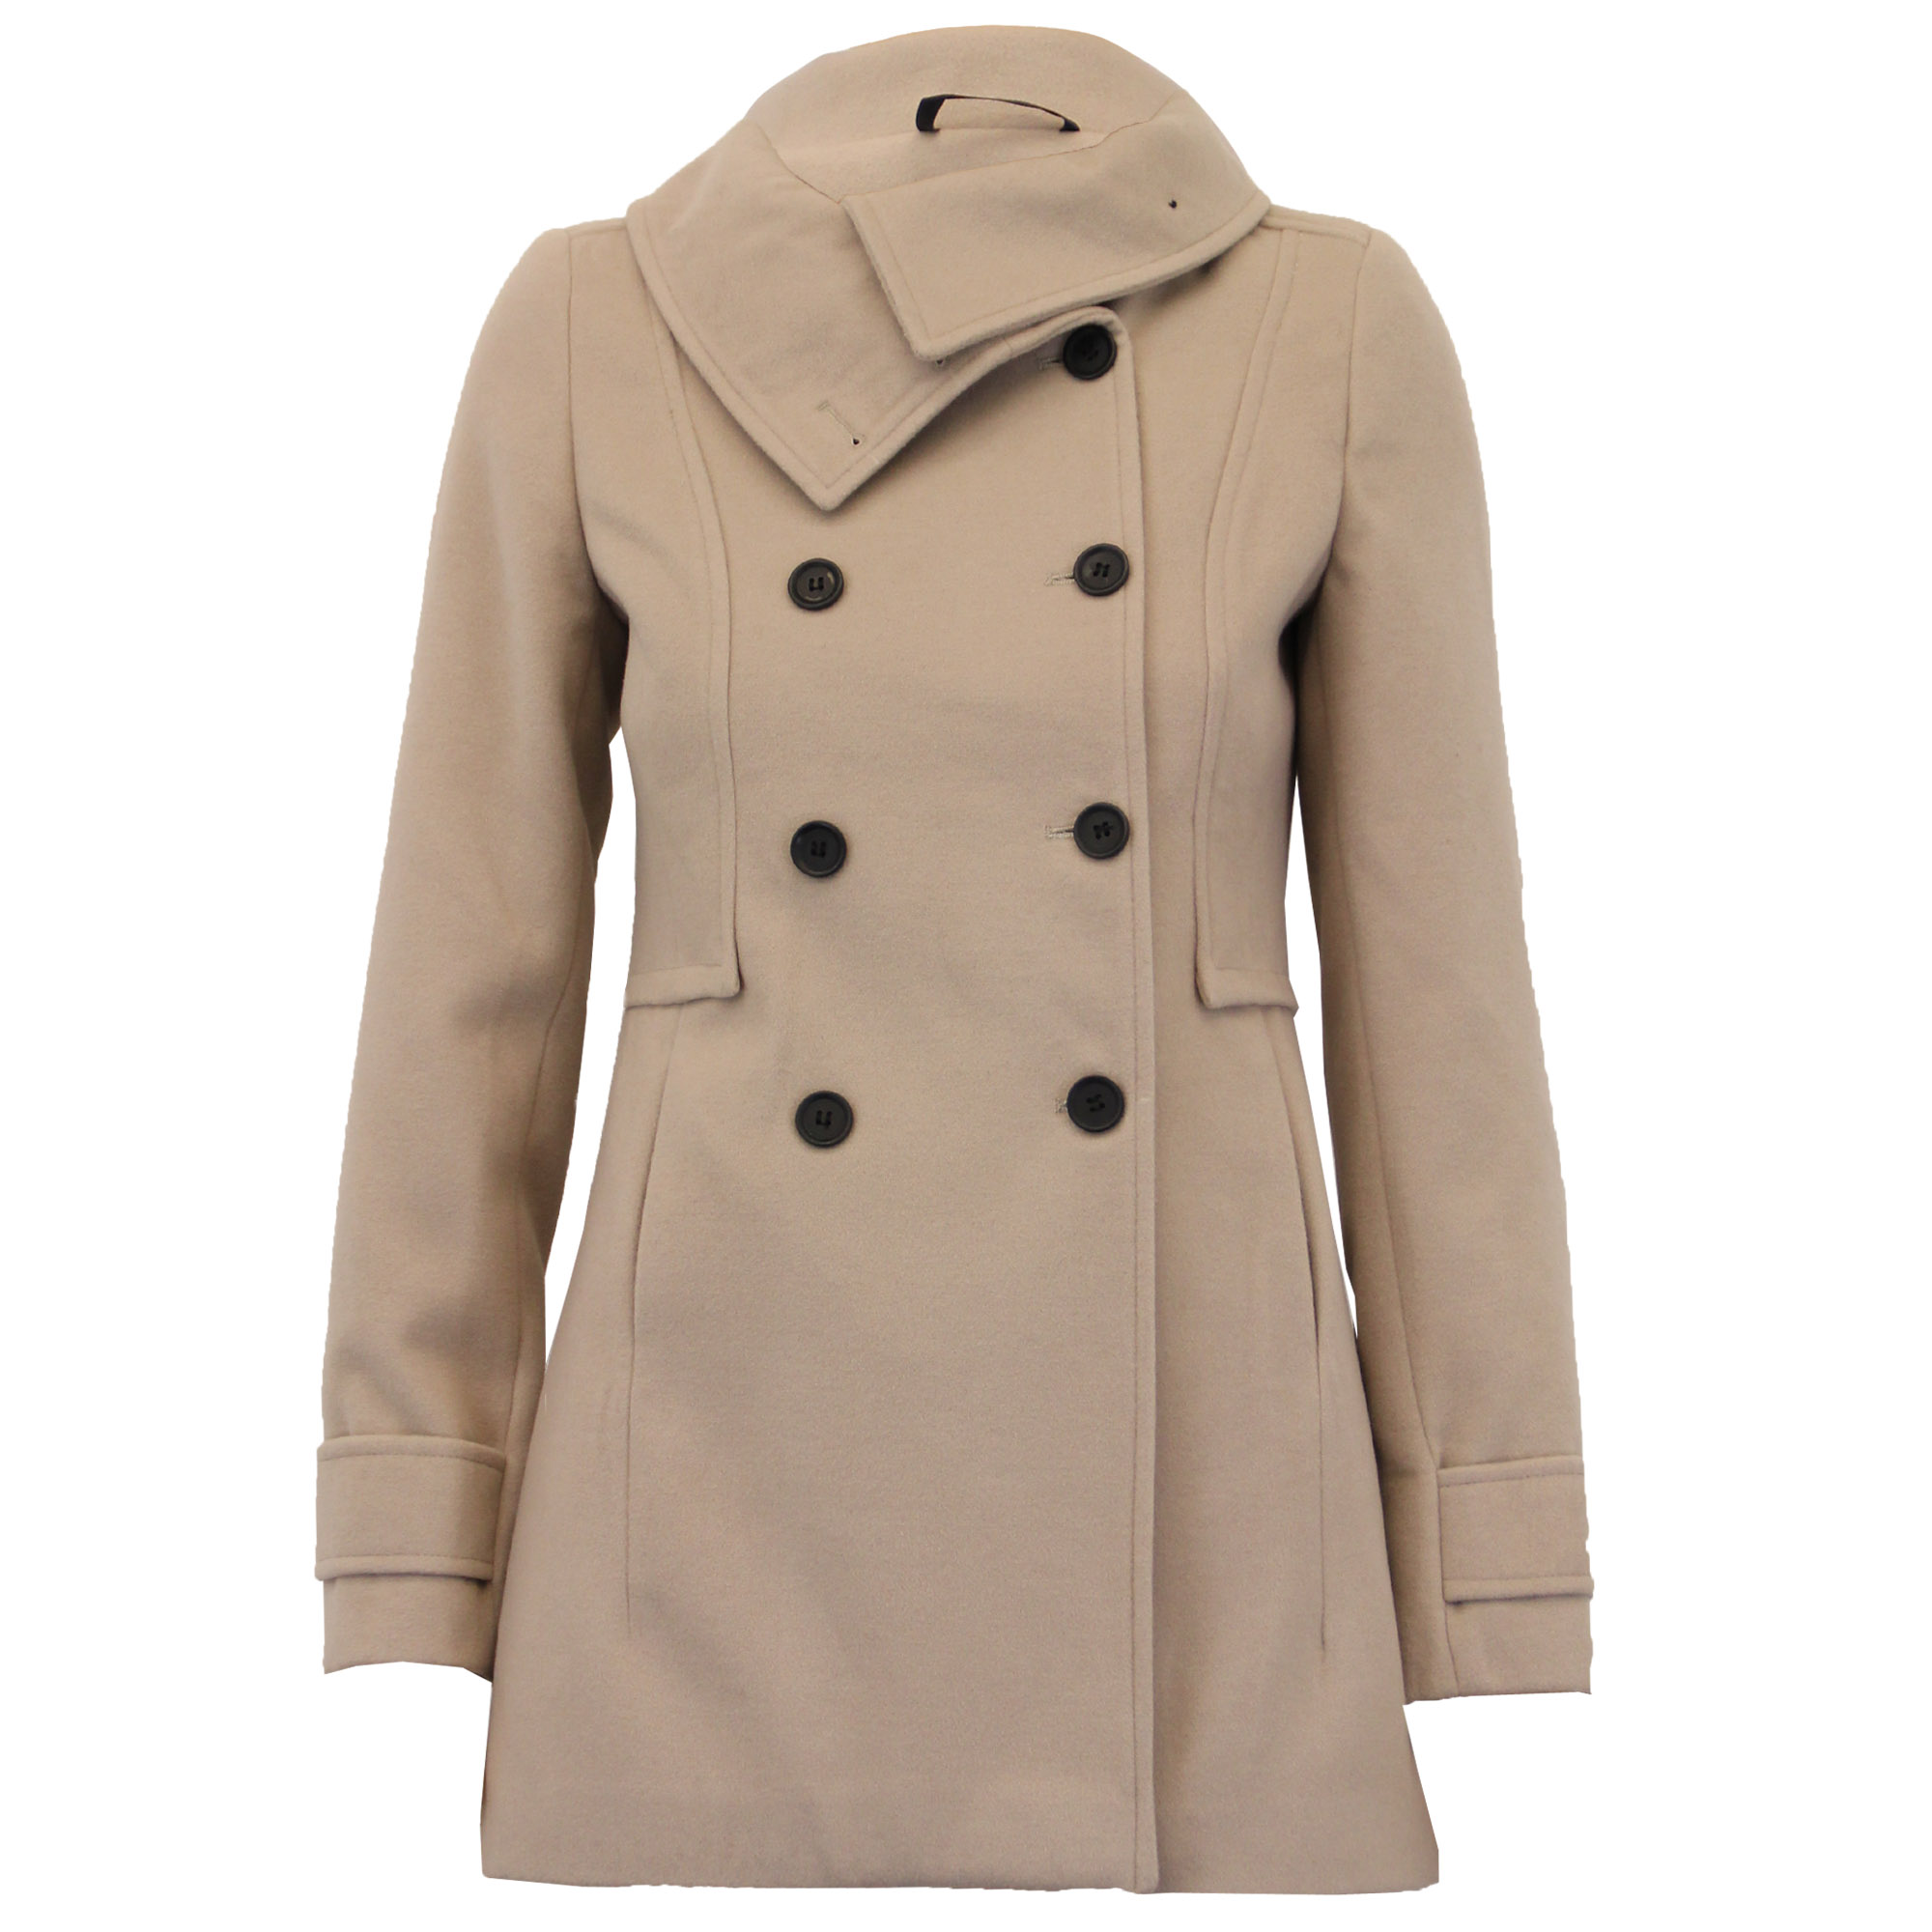 Women's Coats from loadingtag.ga Whether you're upgrading an old favorite or are preparing for colder weather, women's coats from loadingtag.ga will keep you warm and protected from the elements without sacrificing style for function.